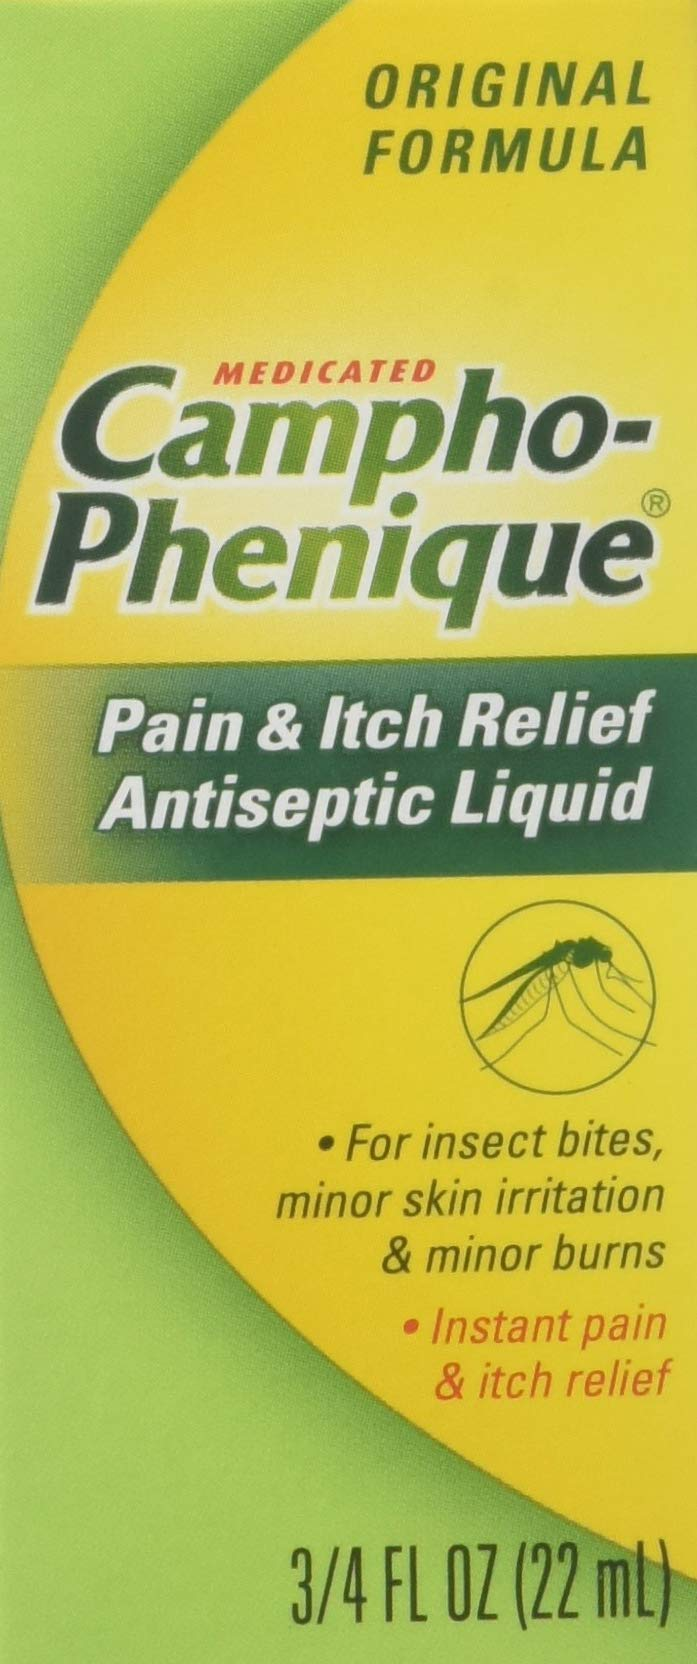 Campho-Phenique Pain & Itch Relief Antiseptic Liquid 0.75 fl oz (Pack of 3) by Campho-Phenique